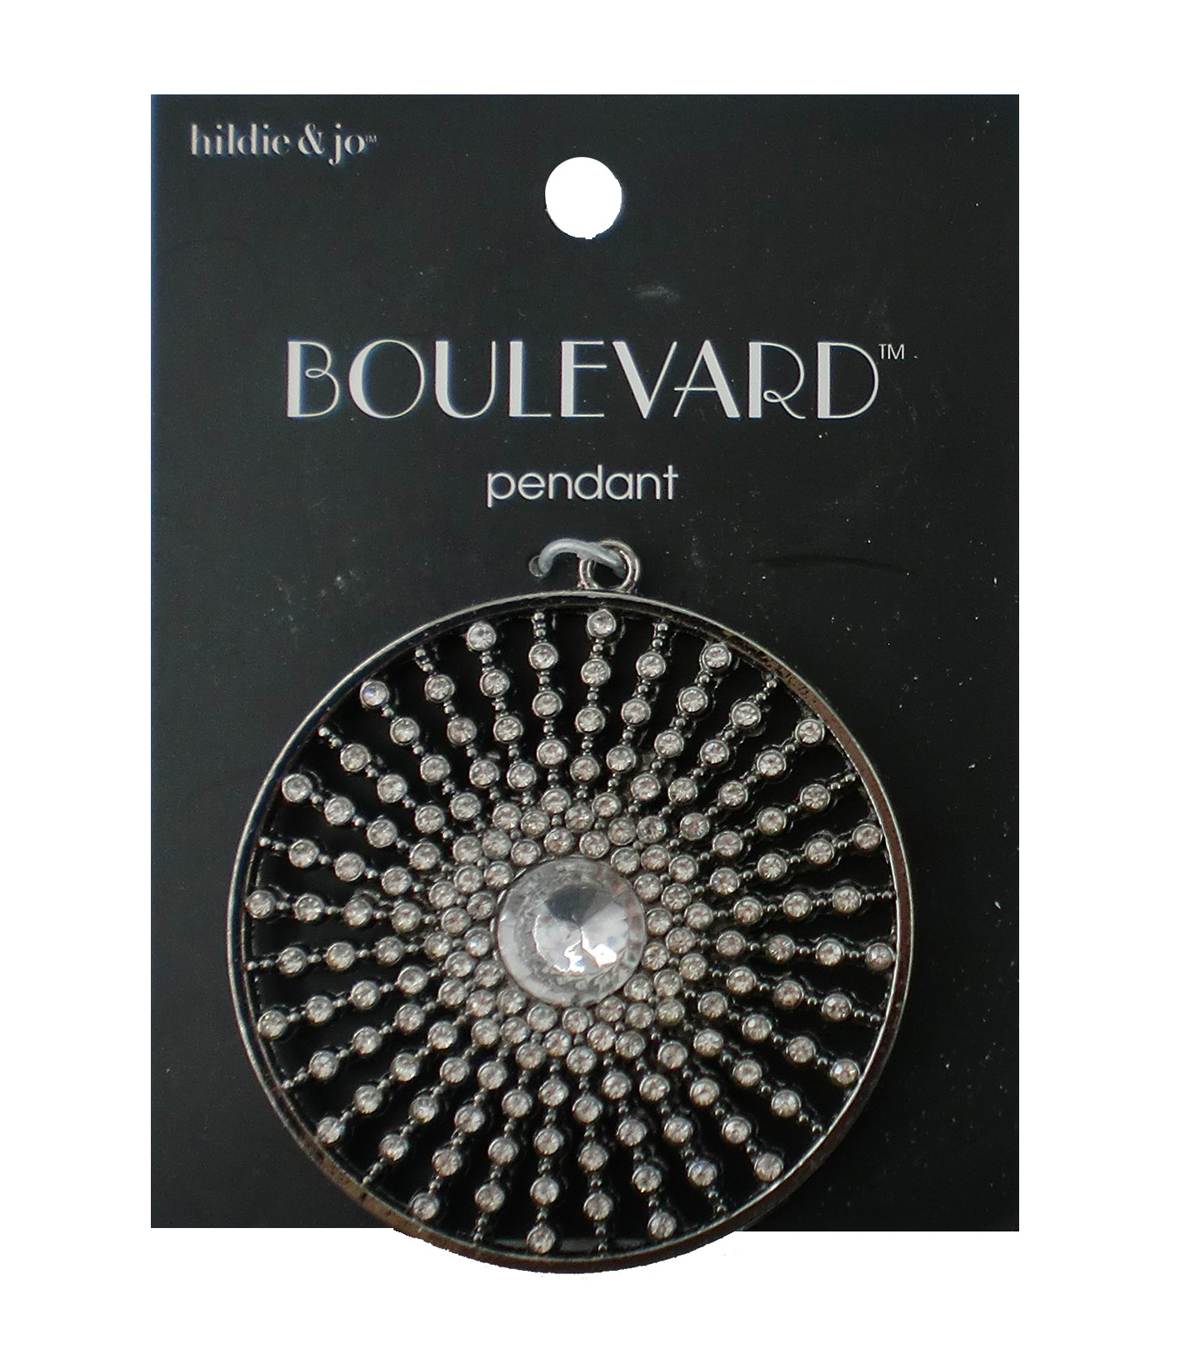 hildie & jo™ Boulevard Sunburst Silver Pendant-Clear Crystal Beads